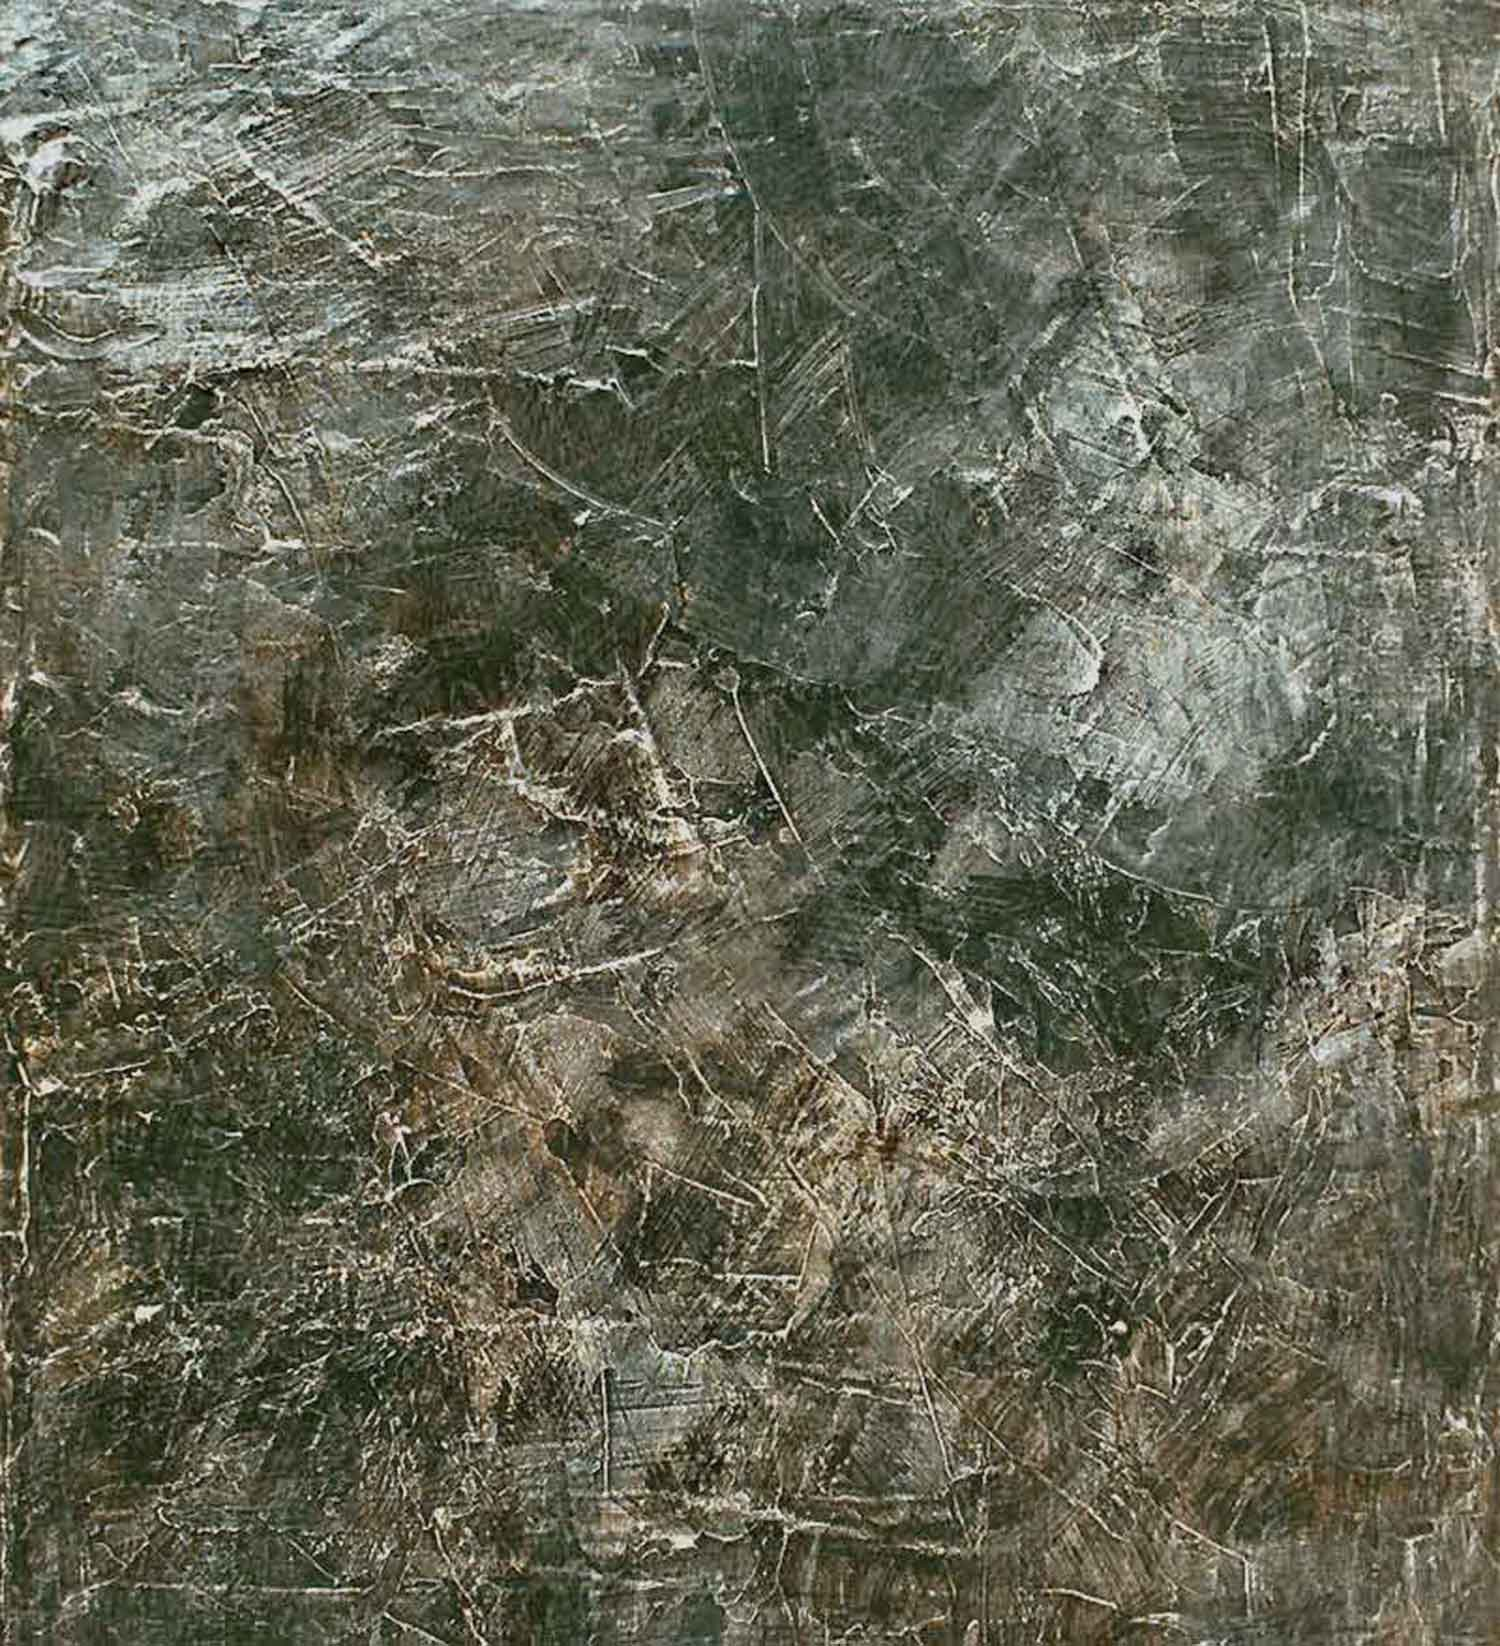 intermission riff - 150 x 132 cm - oil and plaster on canvas - 2001